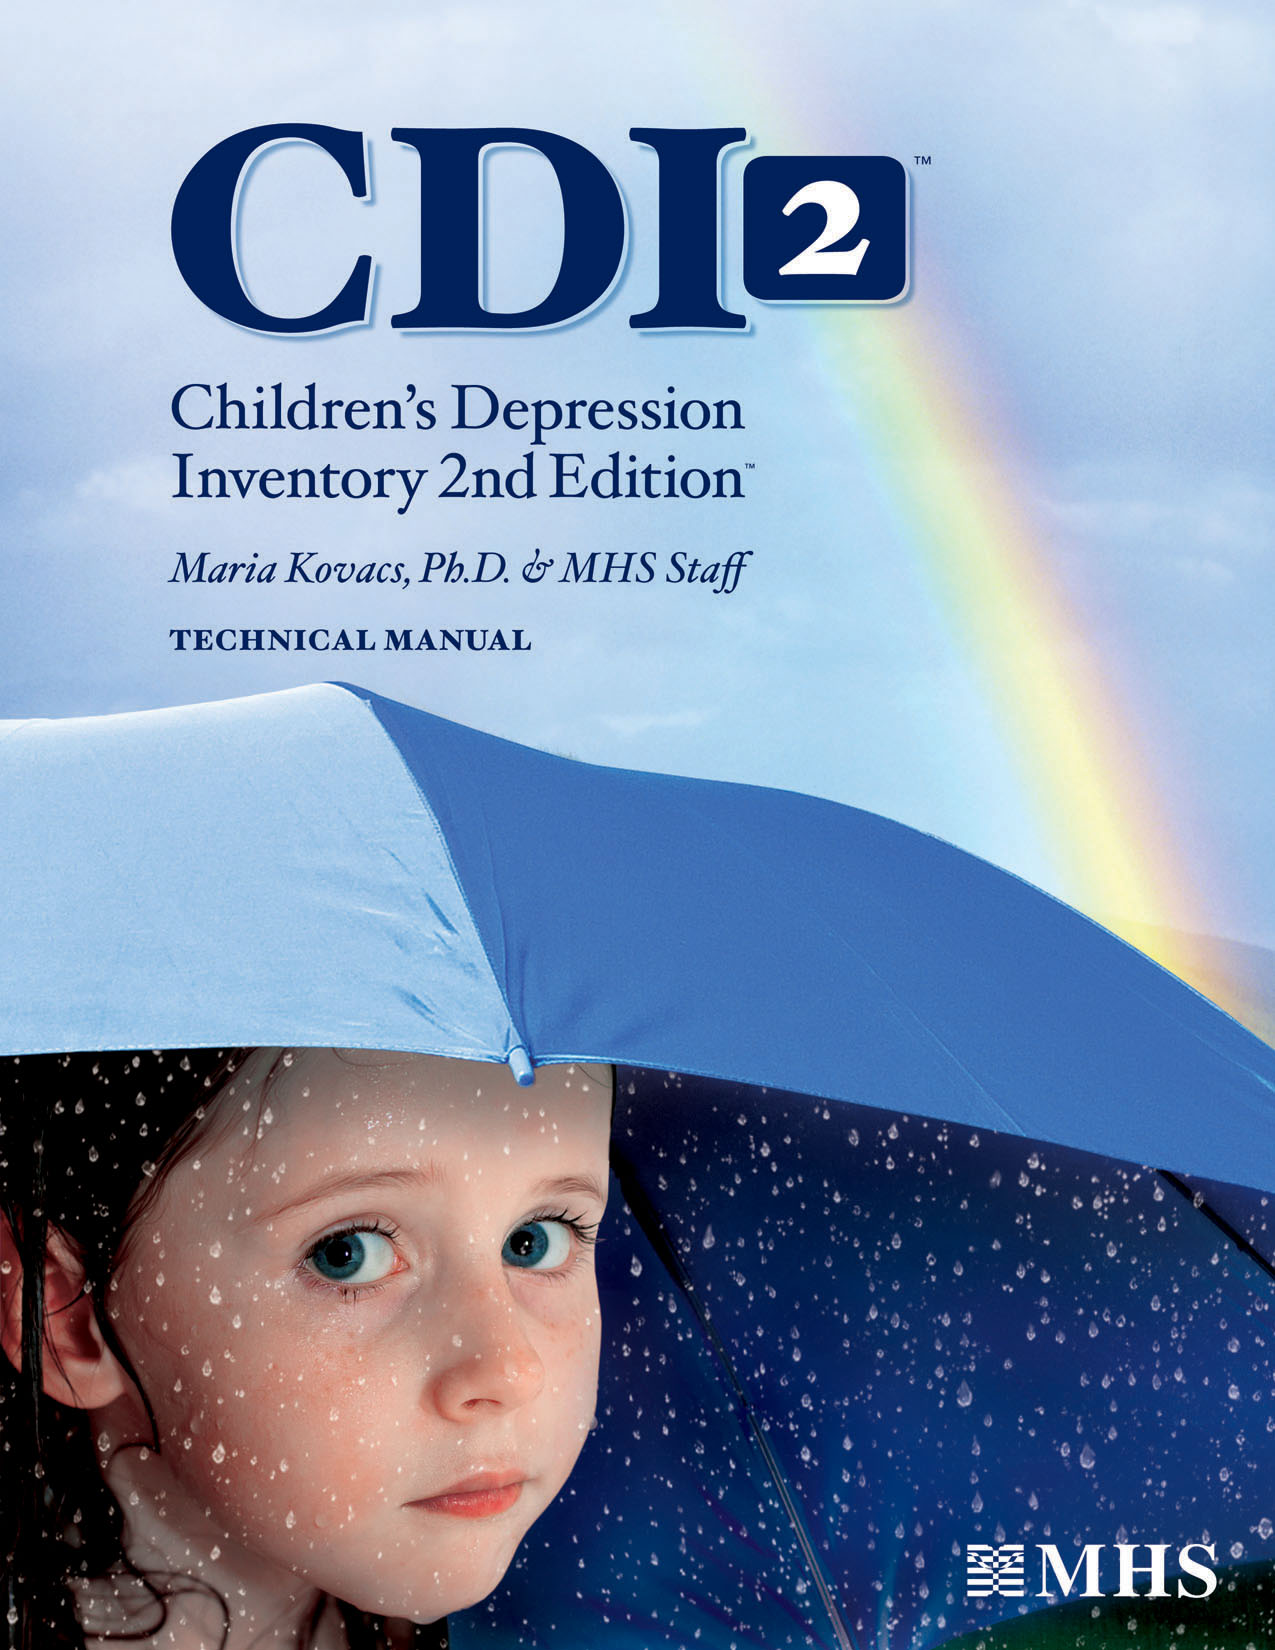 Children's Depression Inventory 2nd Edition - CDI 2